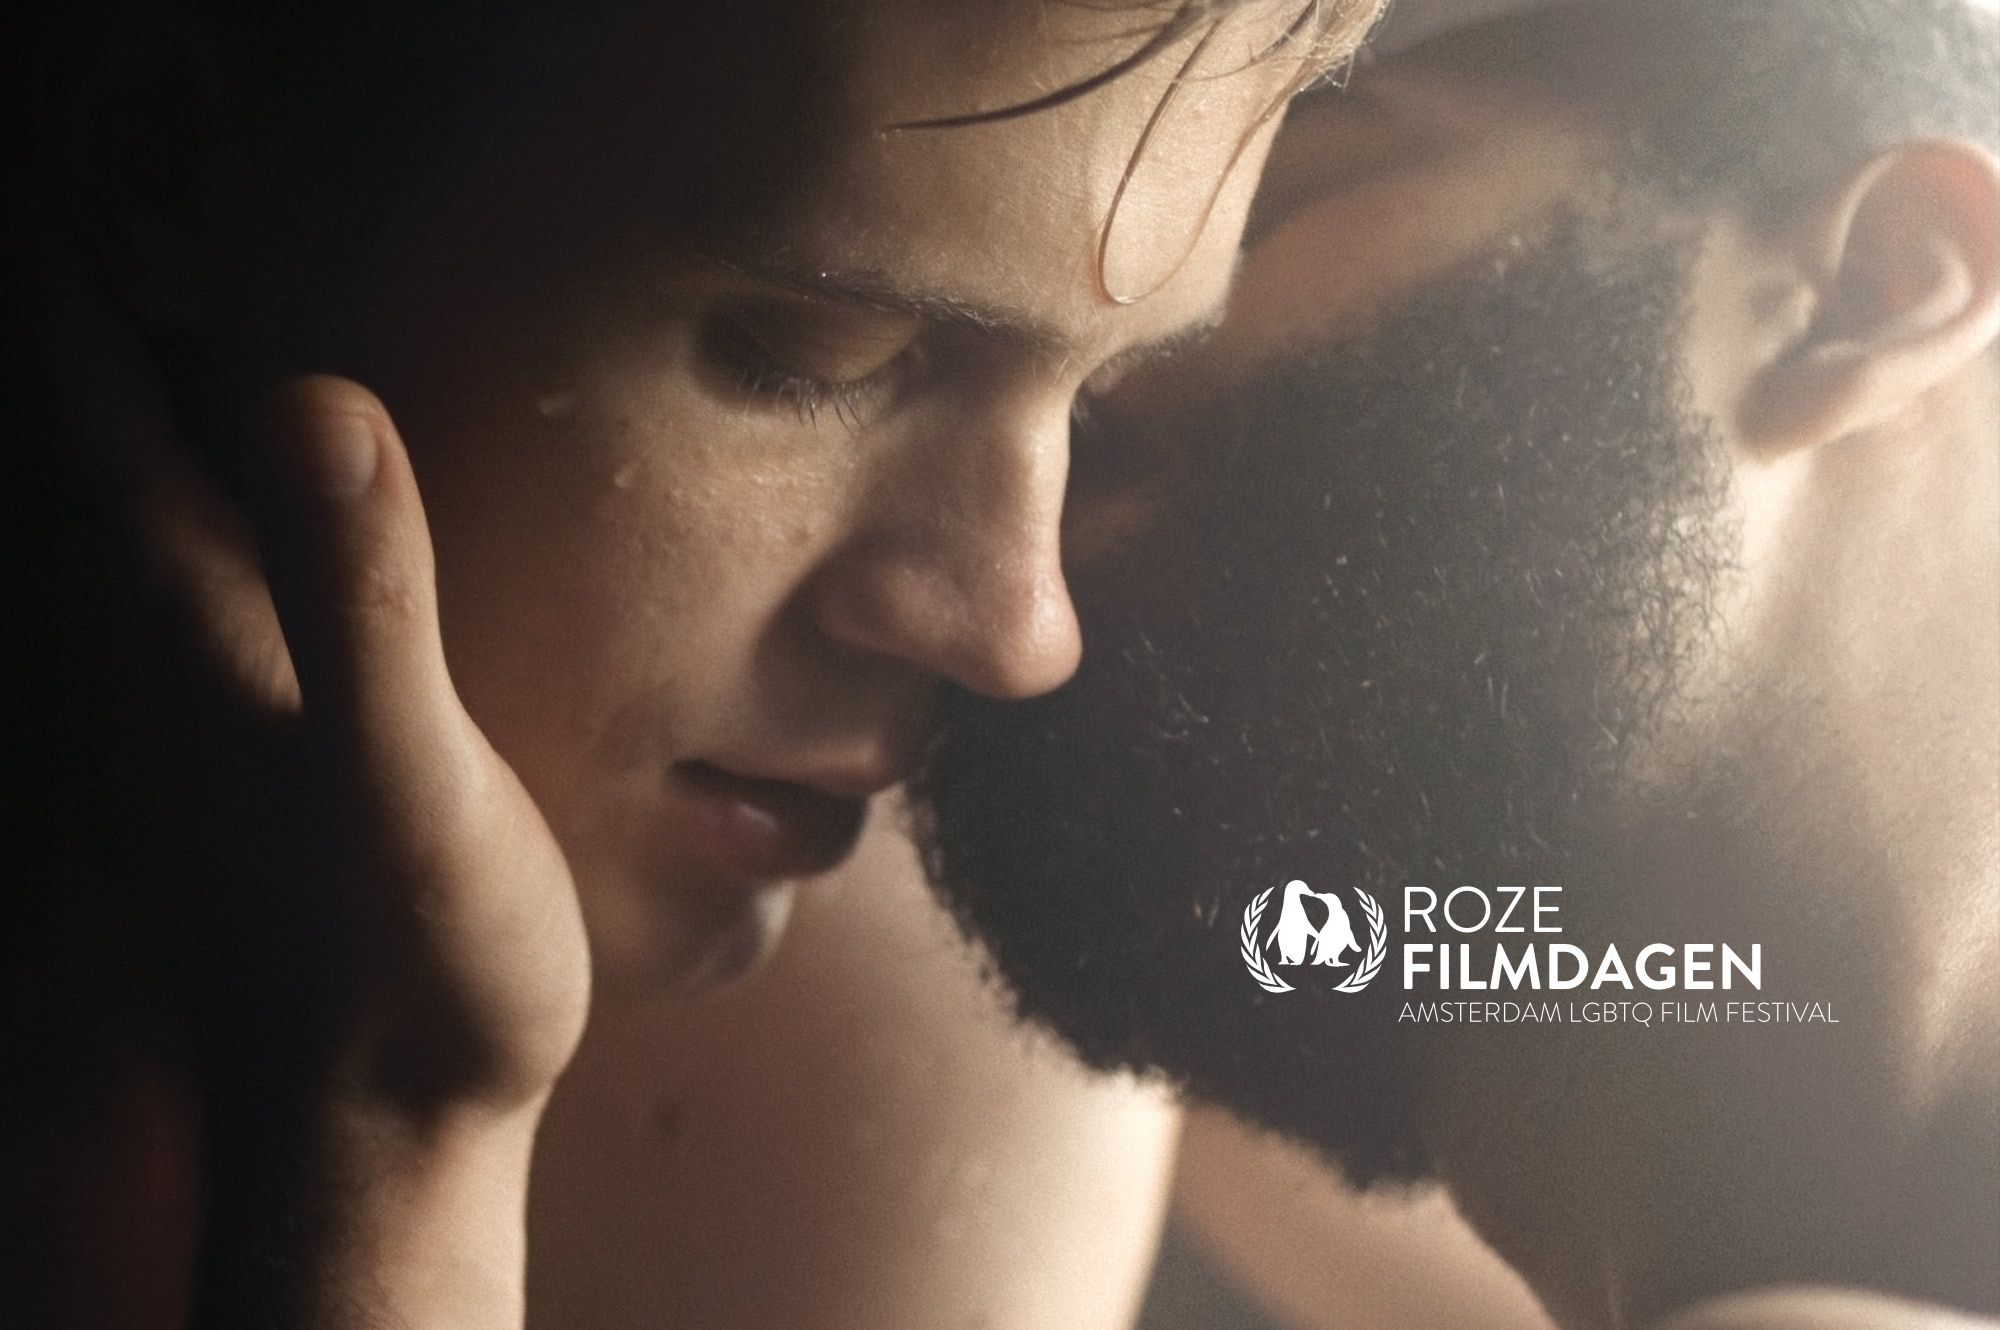 Best Gay Men Kissing Movies 2018